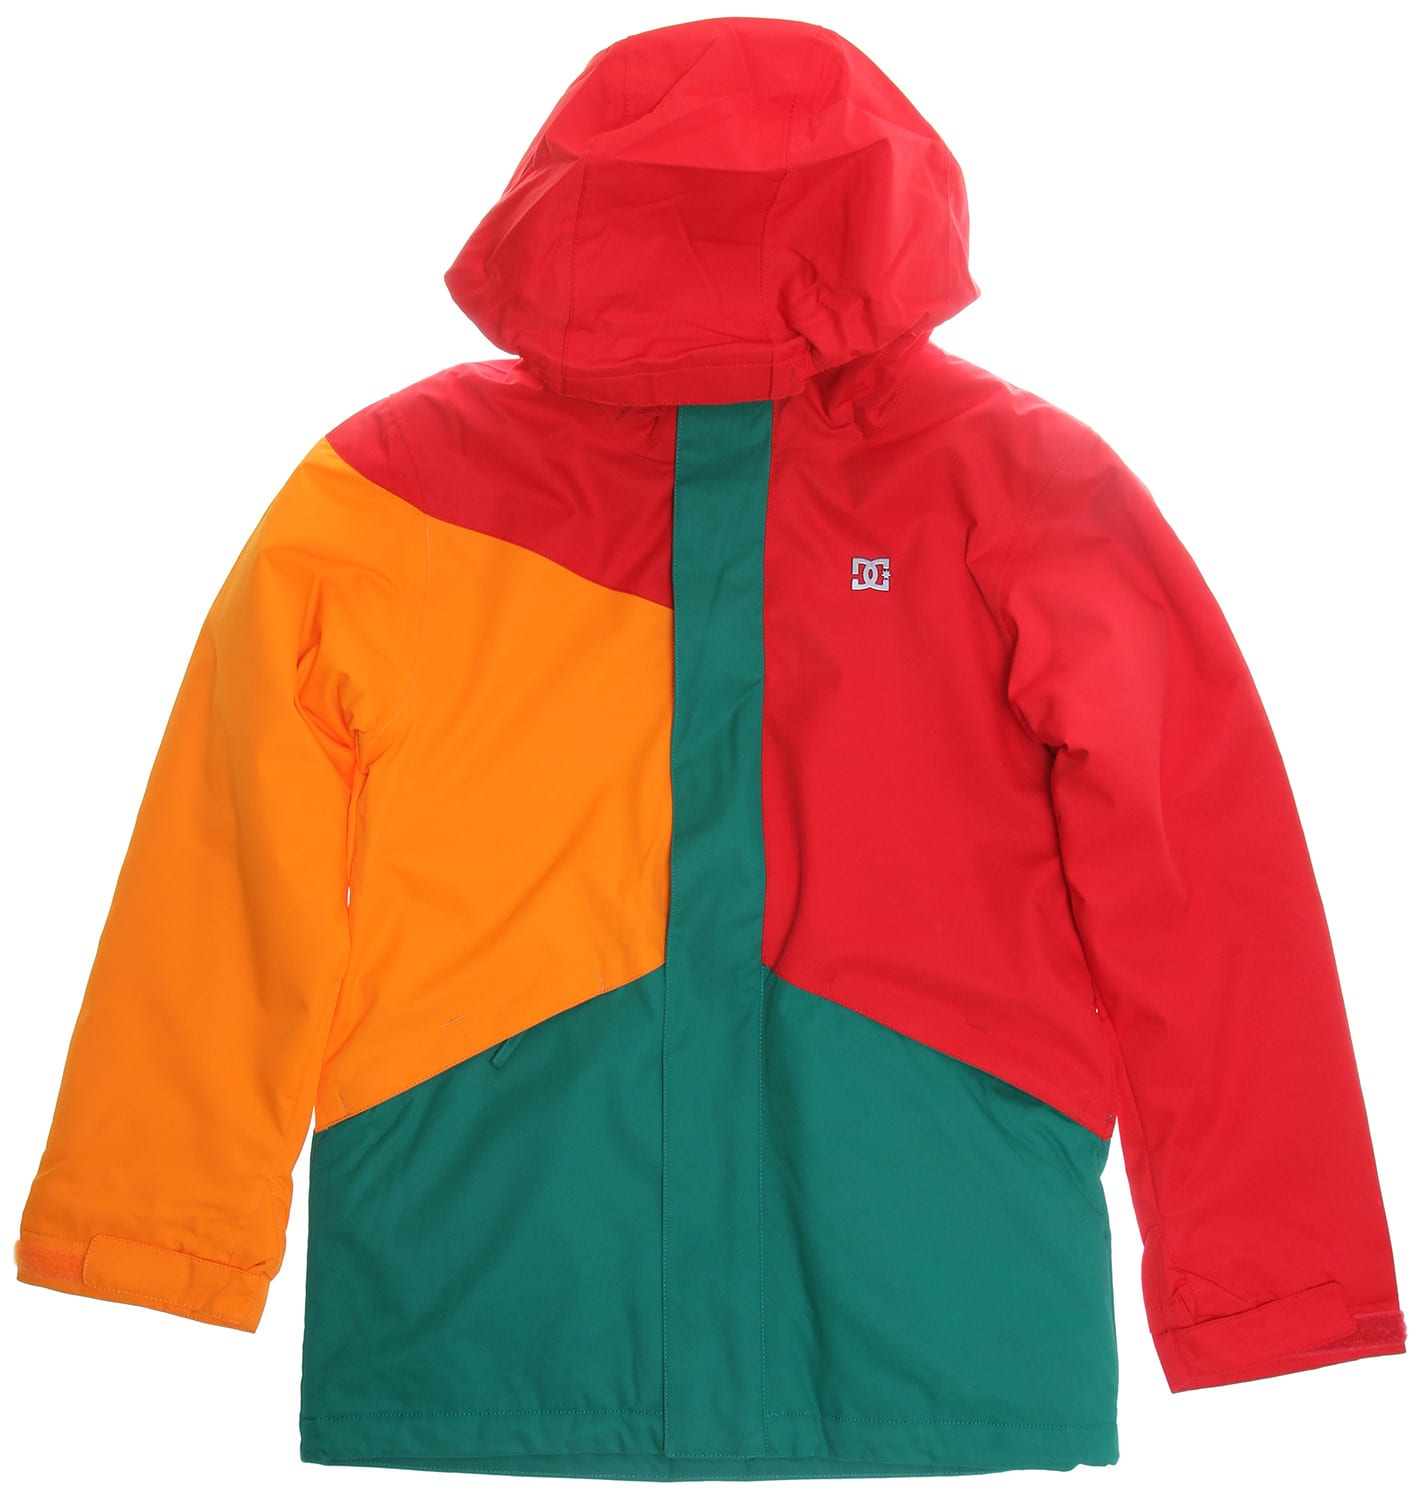 Outdoor clothing for little adventurers